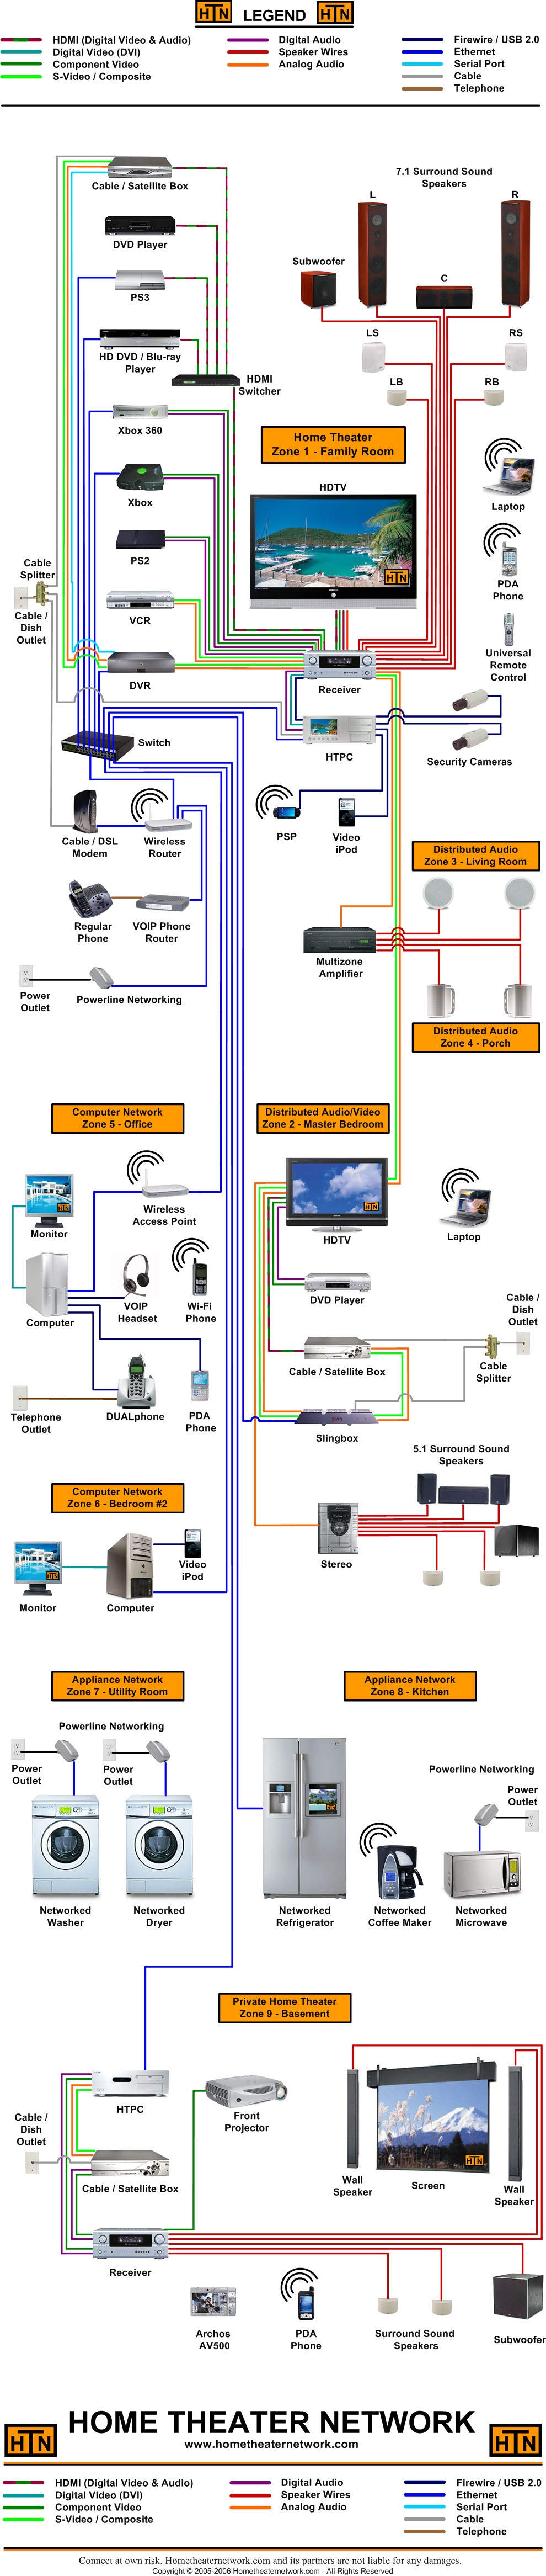 home theater network s large block diagram rh hometheaternetwork com